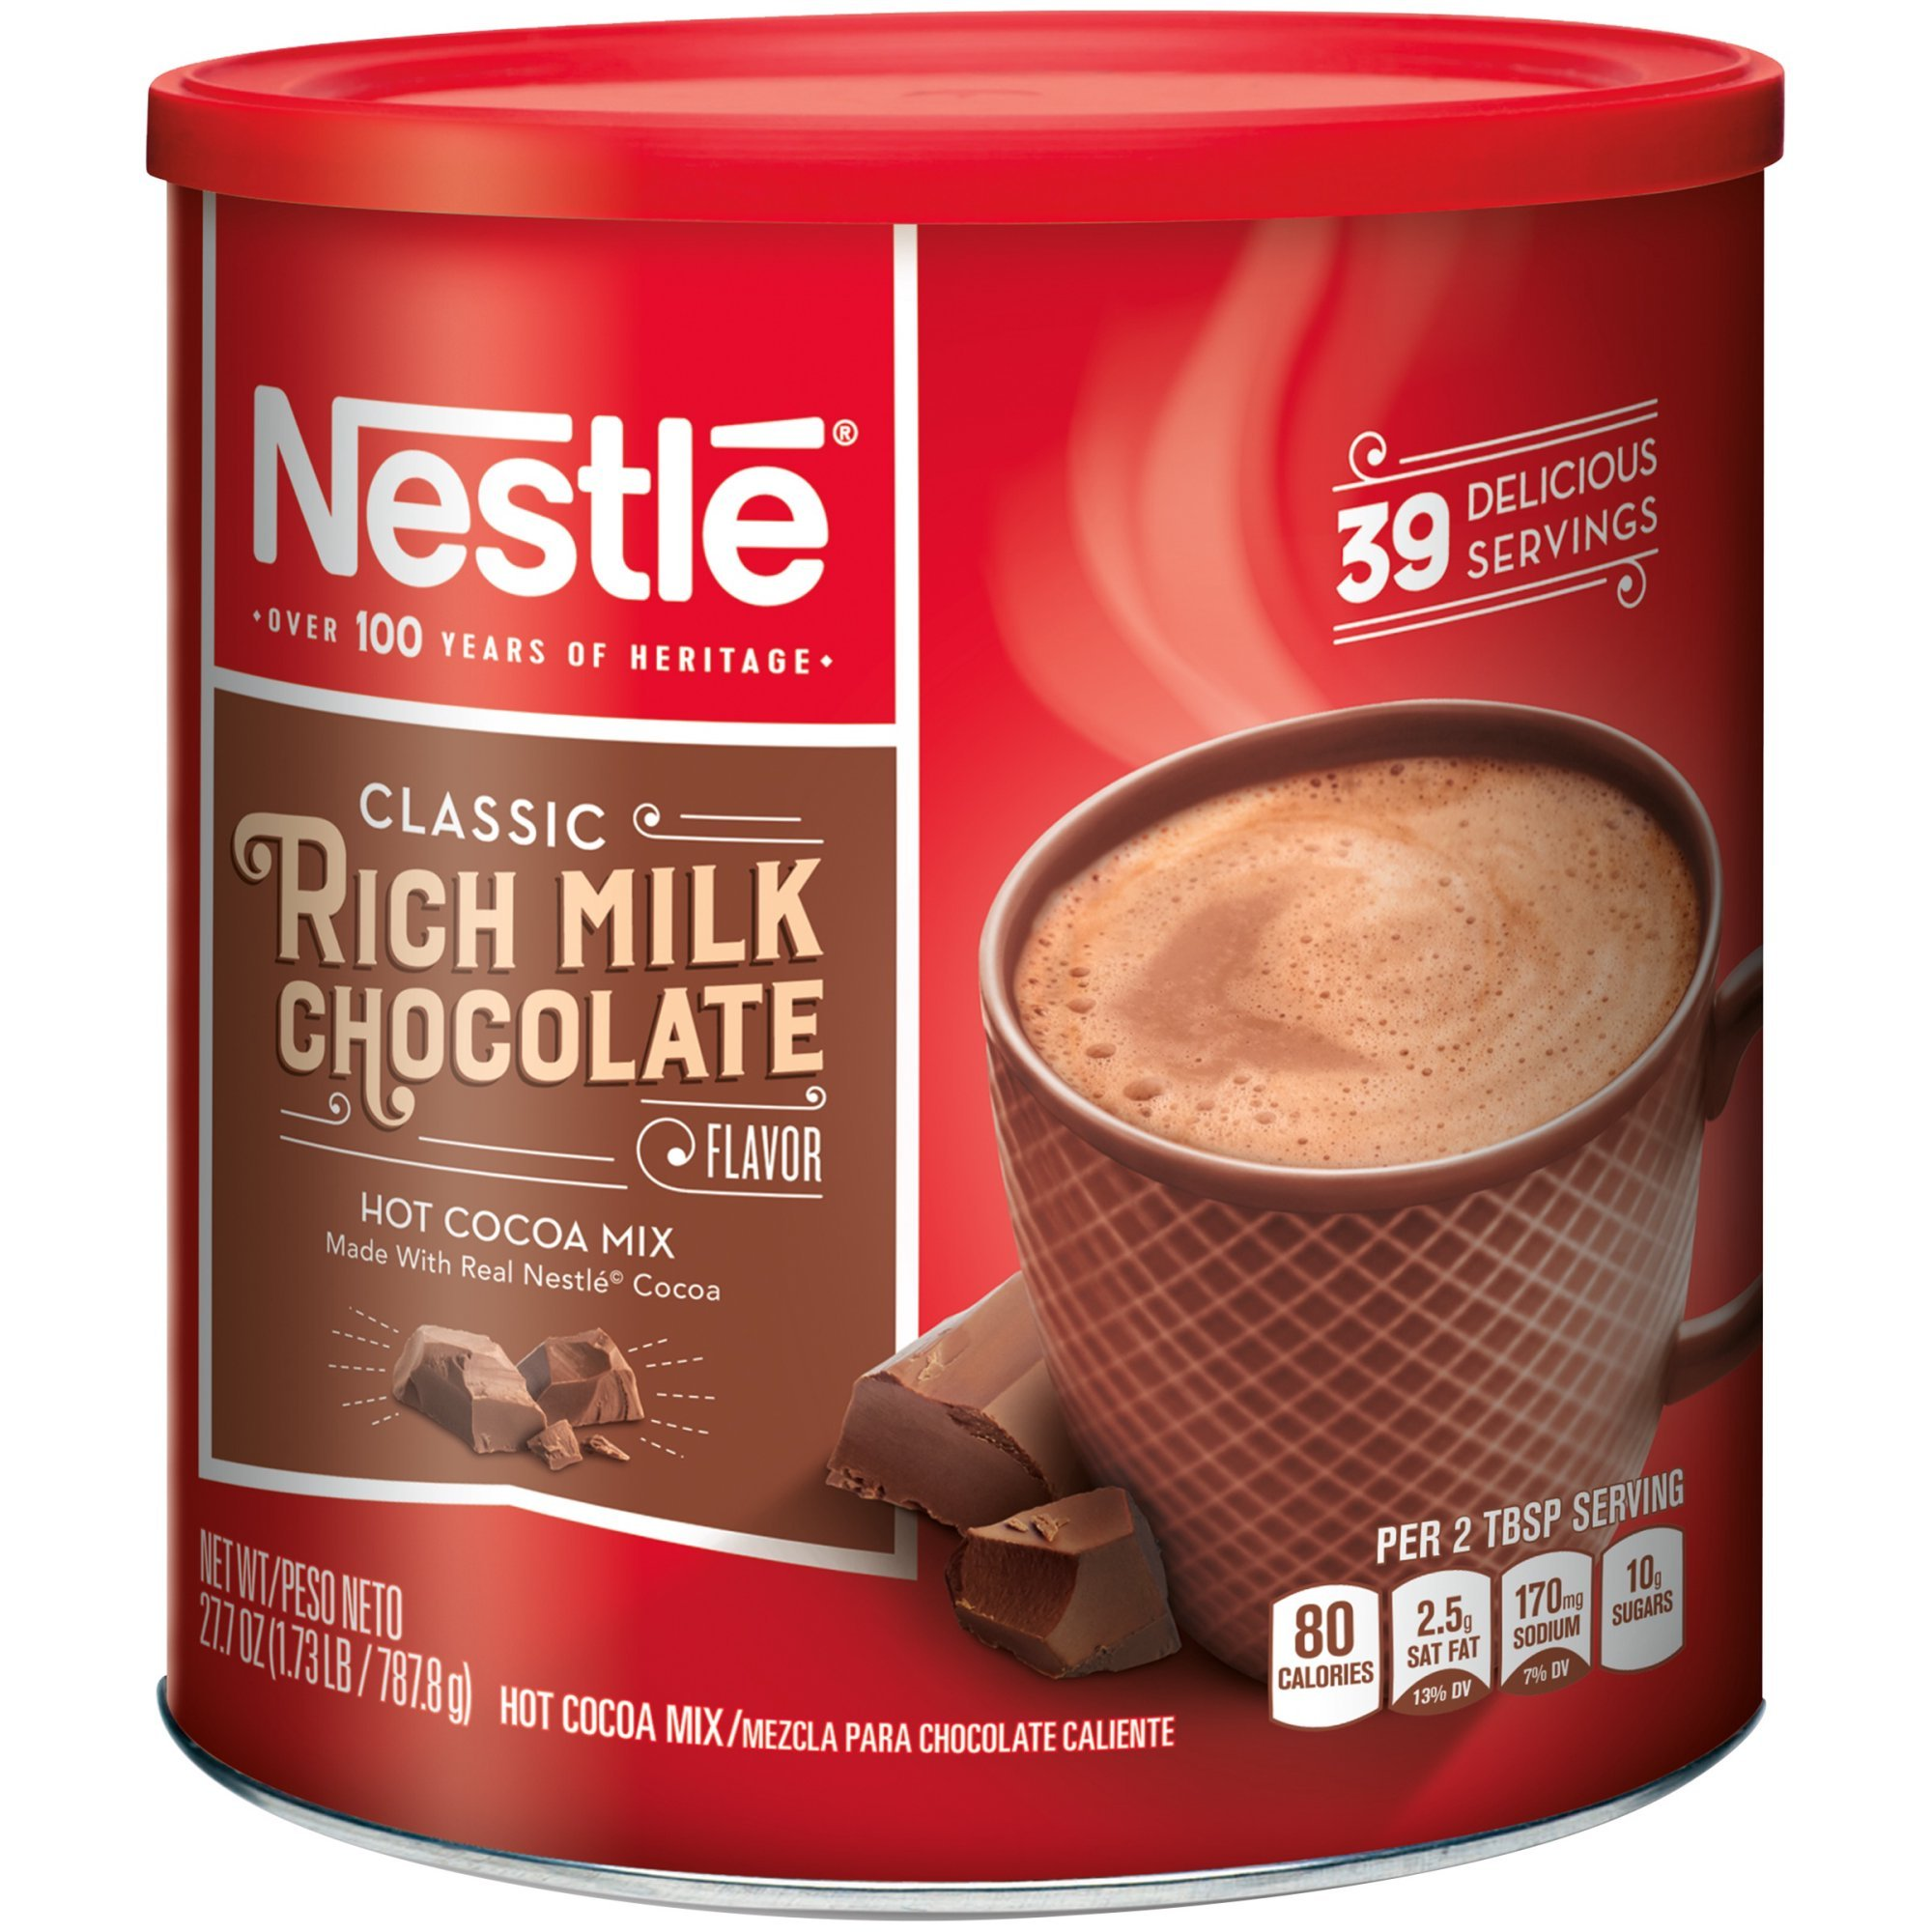 NESTLE HOT COCOA Mix Rich Milk Chocolate Flavor 27.7 oz. Canister (Pack of 5)